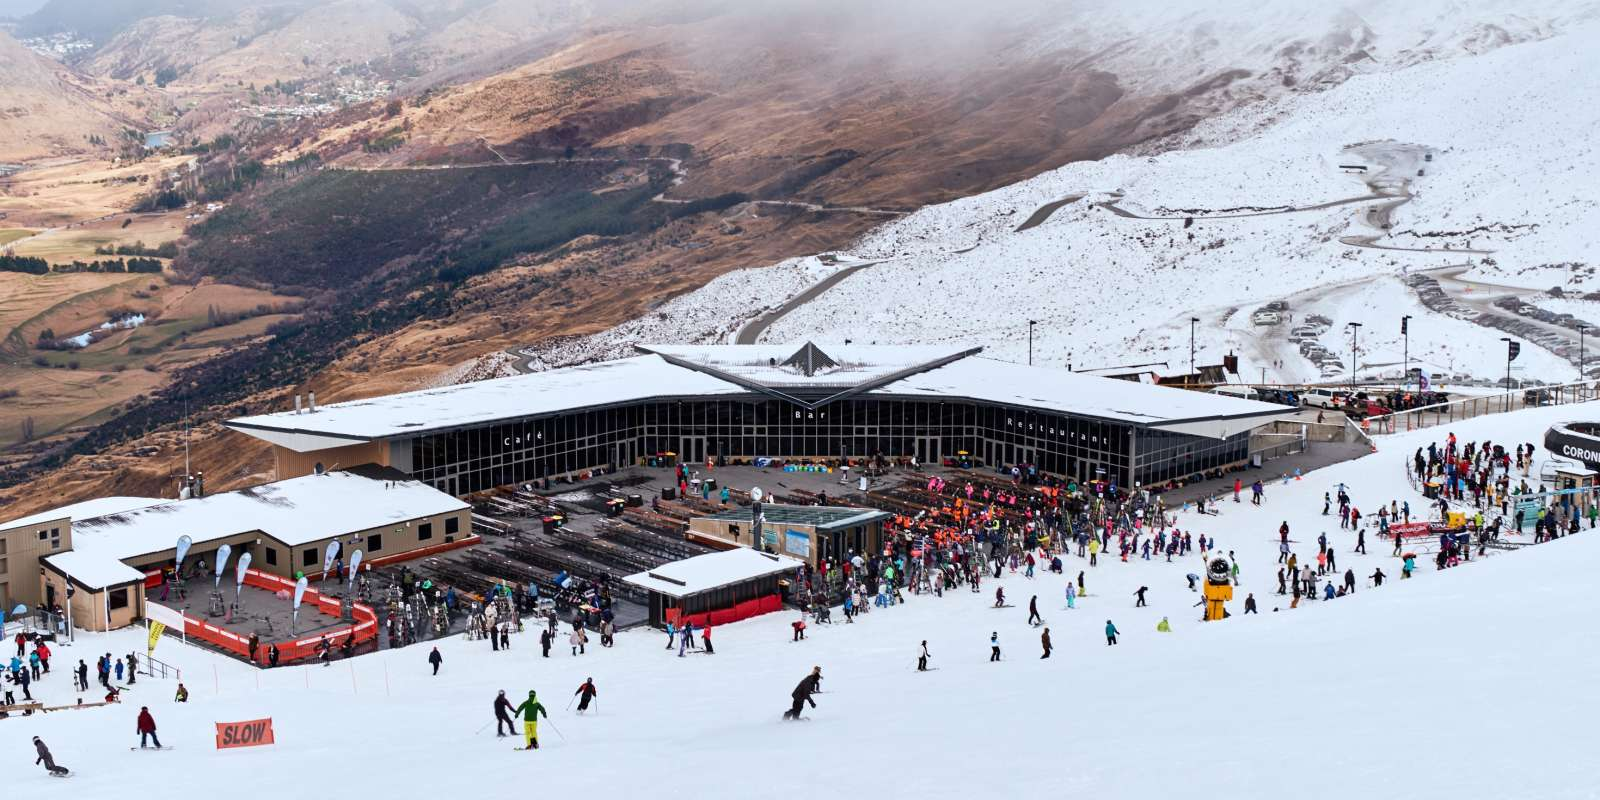 Coronet Peak Base Building